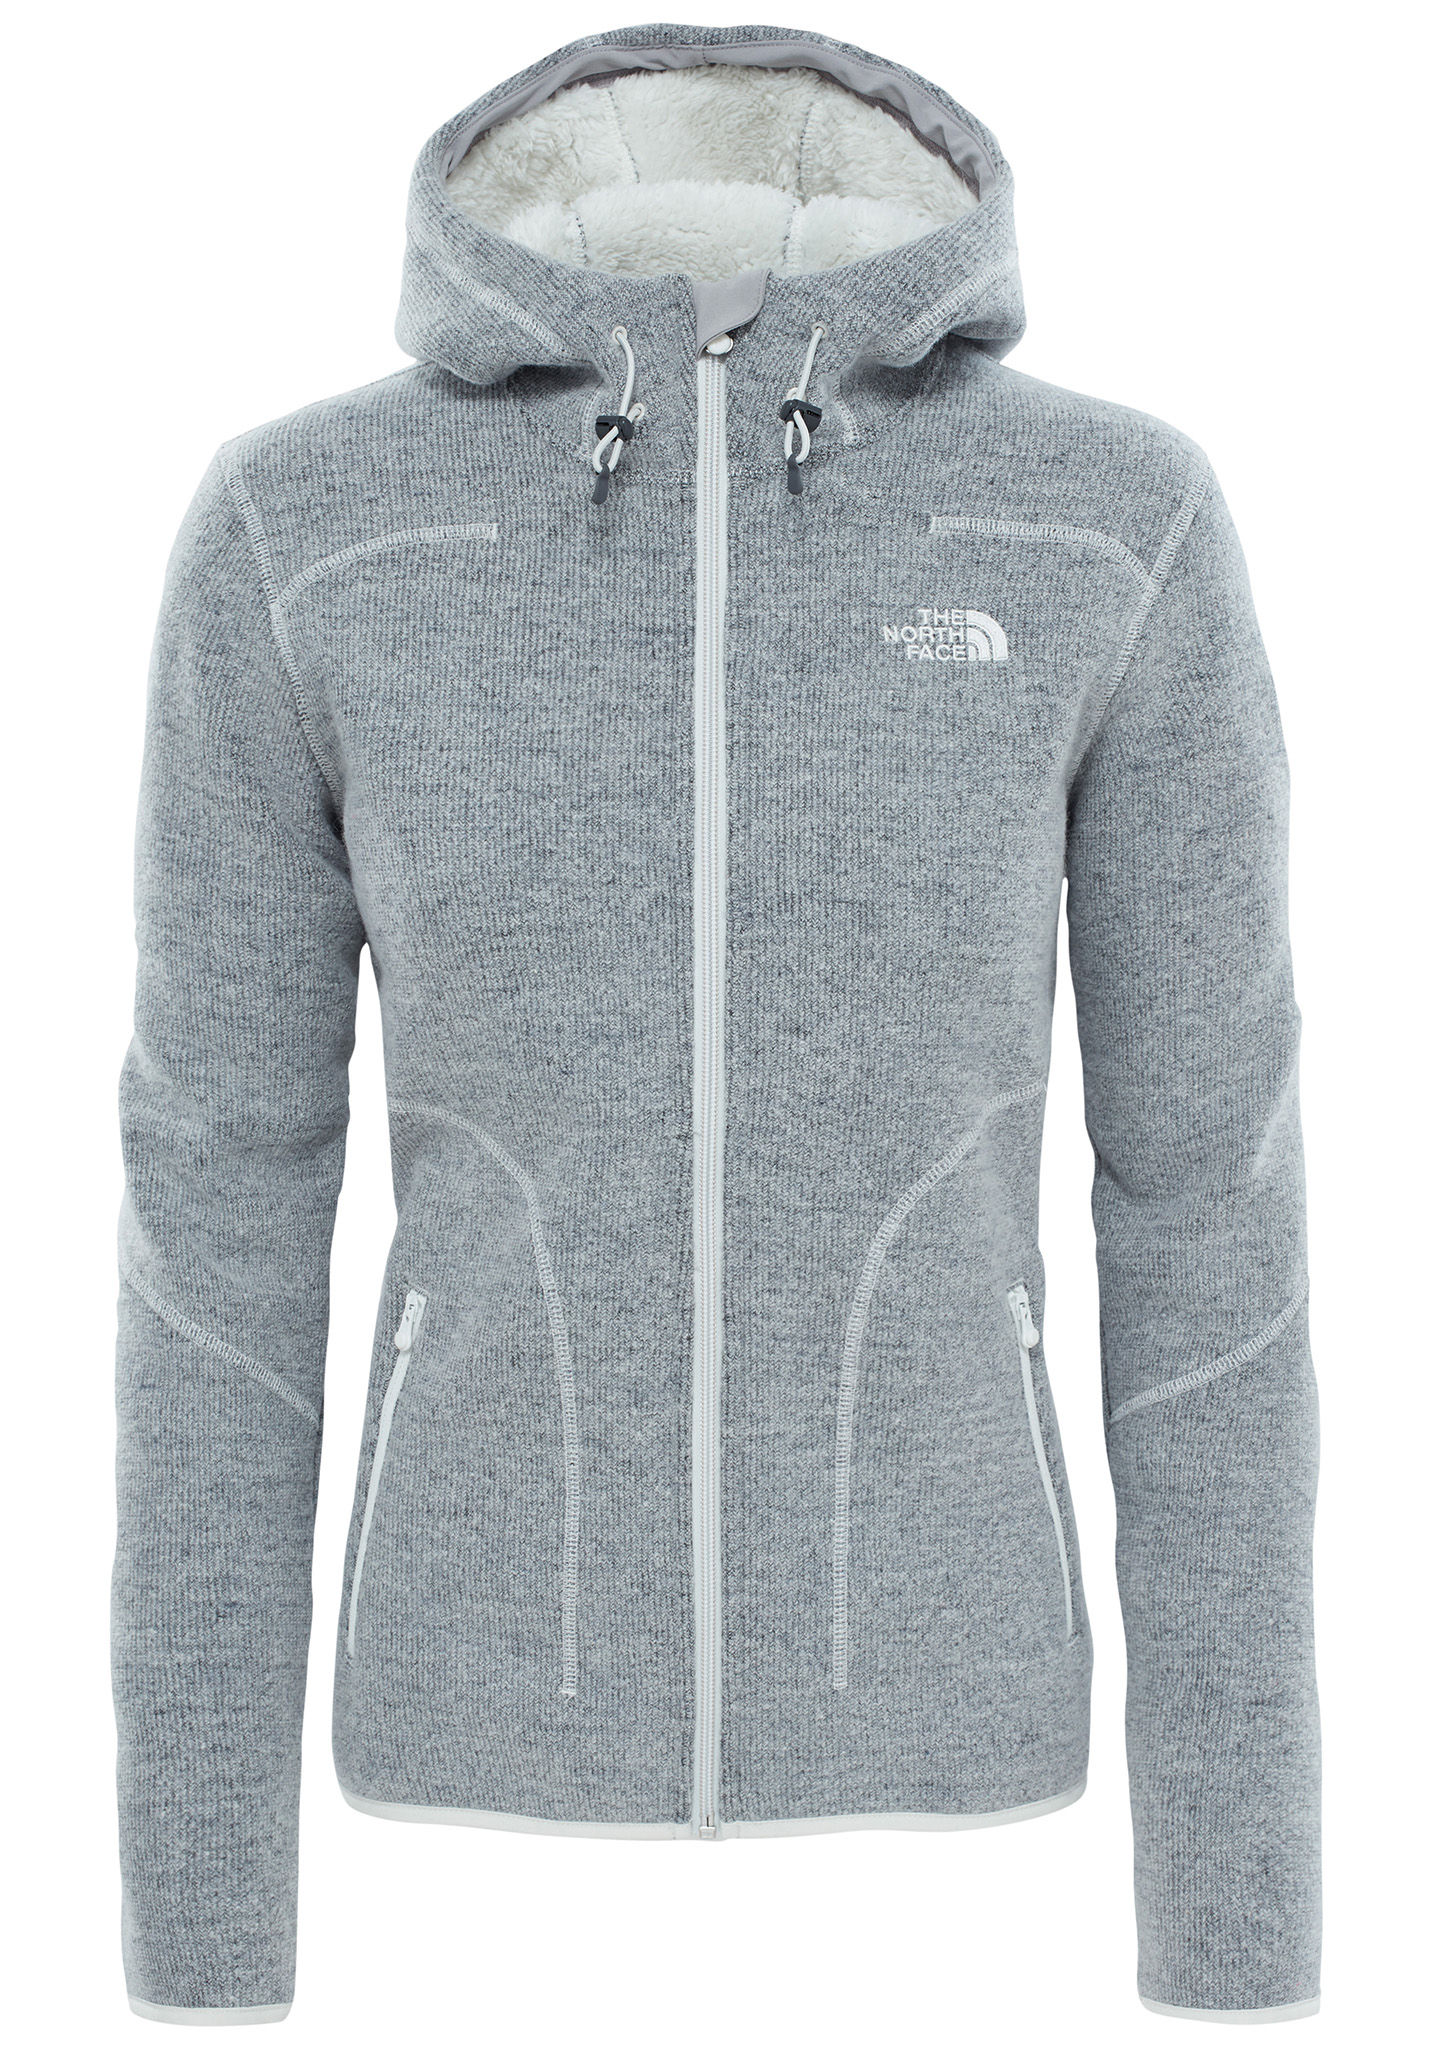 Full H The Grau Zip Face North Zermatt Damen Jacke Für Planet Sports CtxwRHq